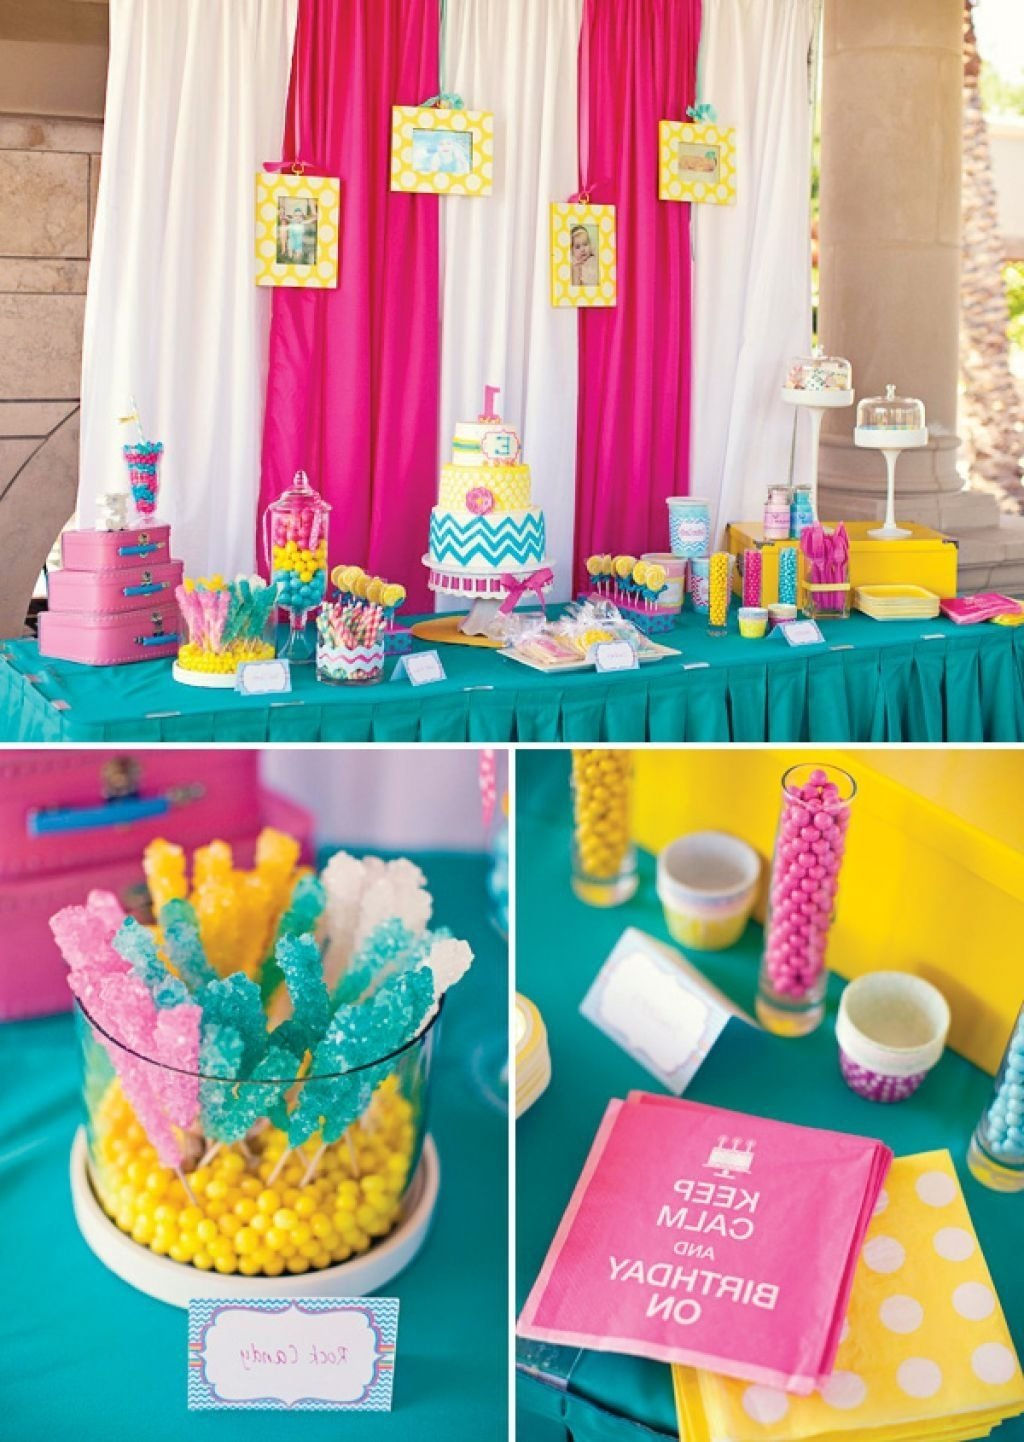 10 Stylish Birthday Party Ideas For A 3 Year Old outdoor party decorations google search madeline pinterest 13 2021